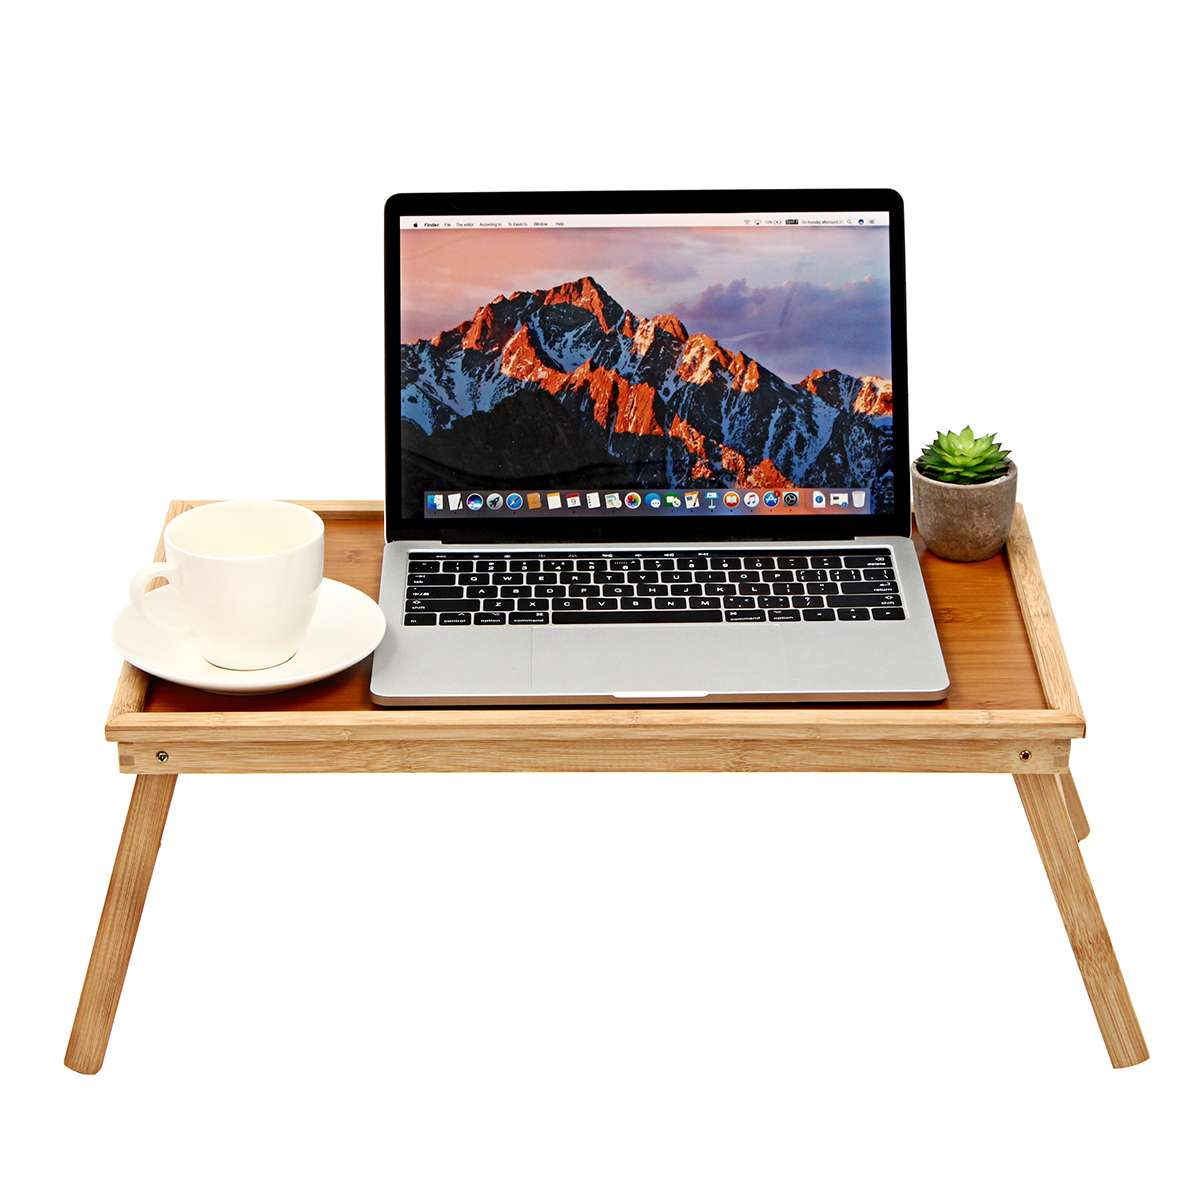 20 Portable Bamboo Laptop Desk Bed Serving Tray Foldable Notebook Table Holder Computer Desks Office Furniture 50*30*20CM20 Portable Bamboo Laptop Desk Bed Serving Tray Foldable Notebook Table Holder Computer Desks Office Furniture 50*30*20CM